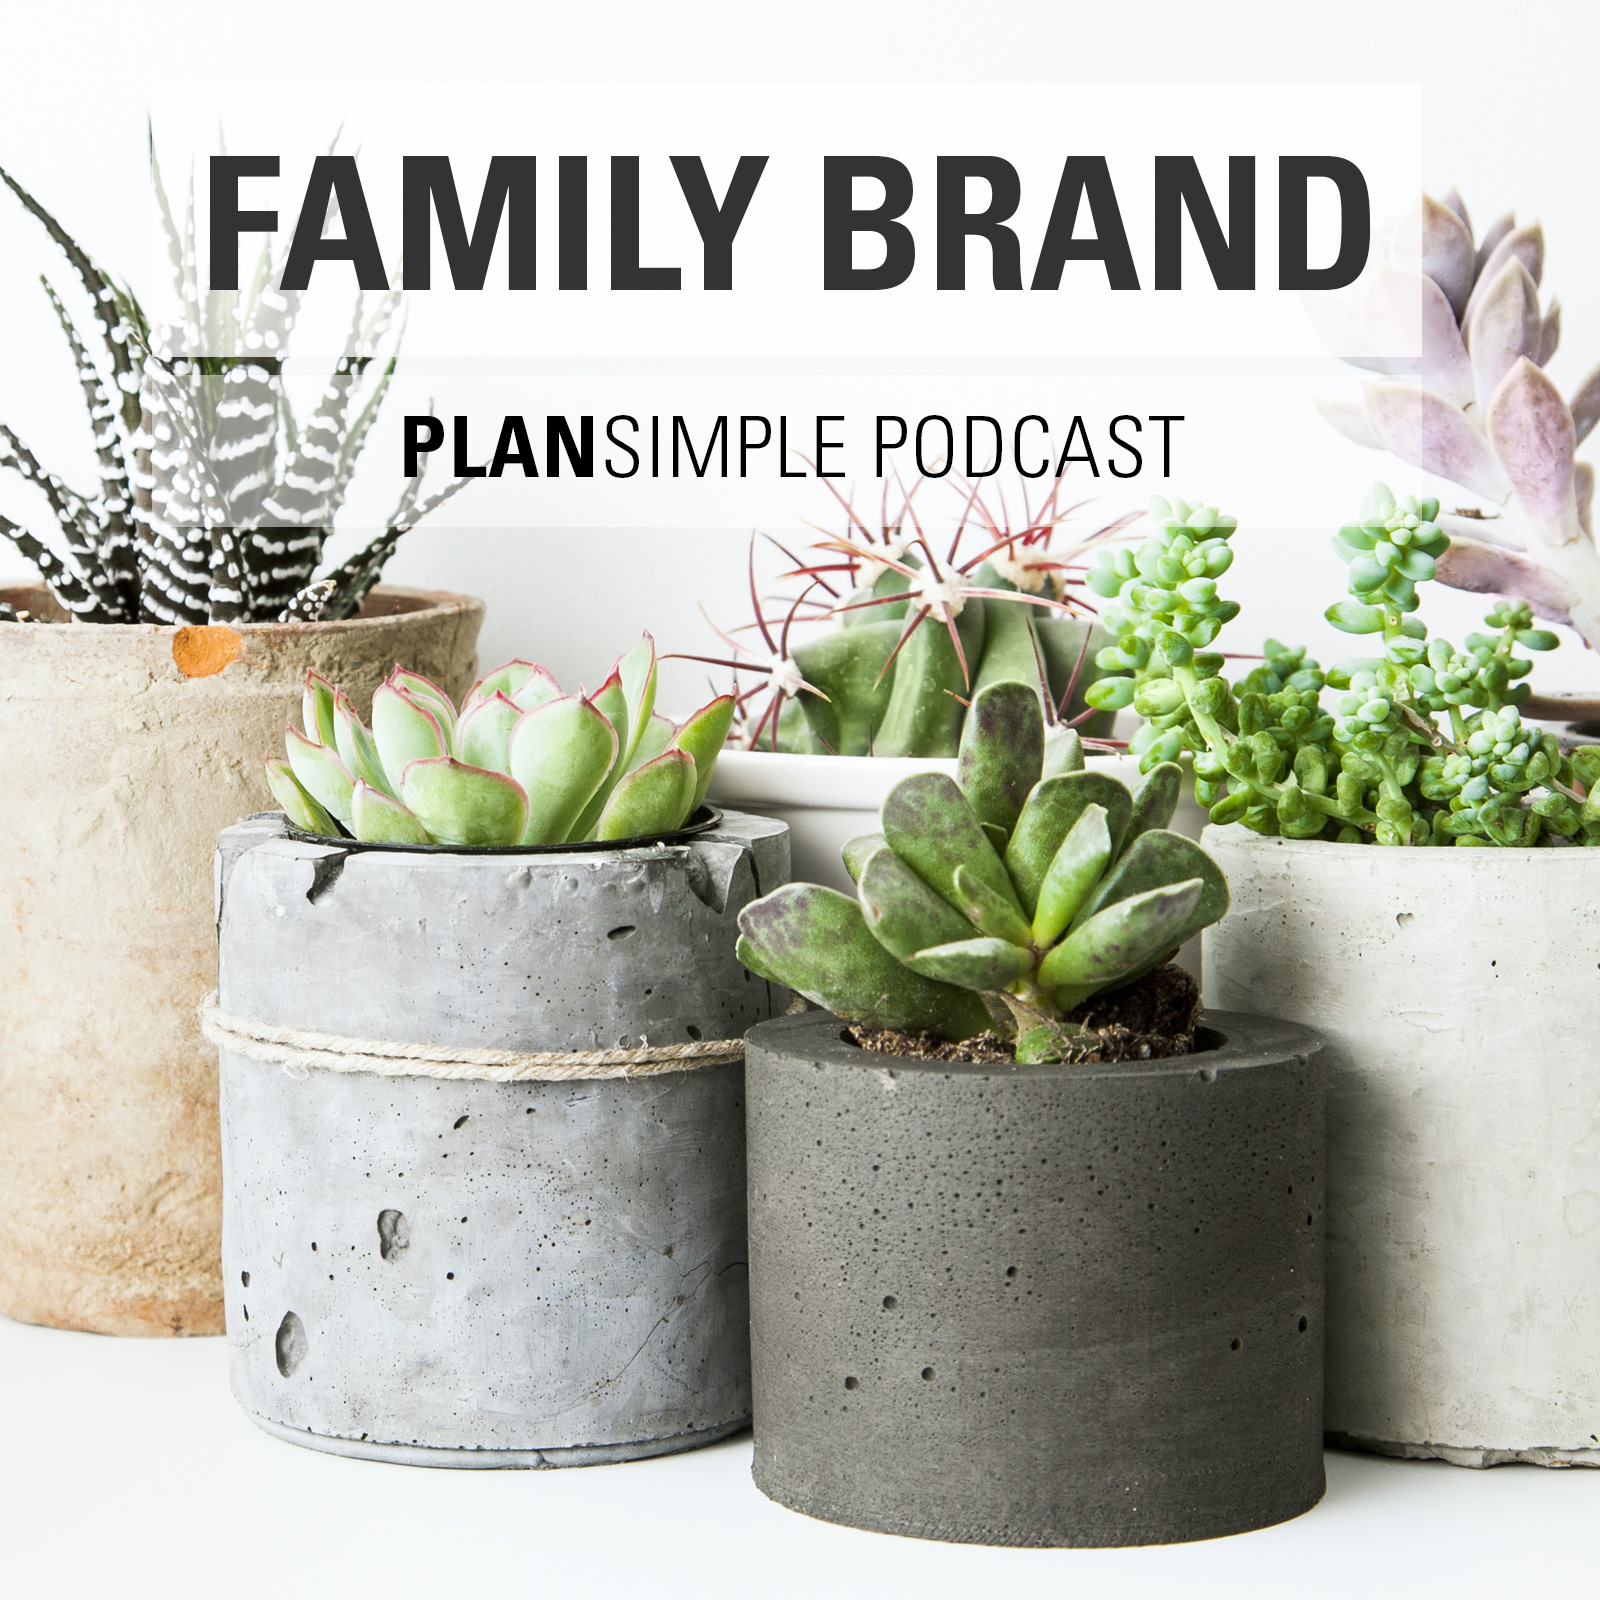 Family Brand Podcast